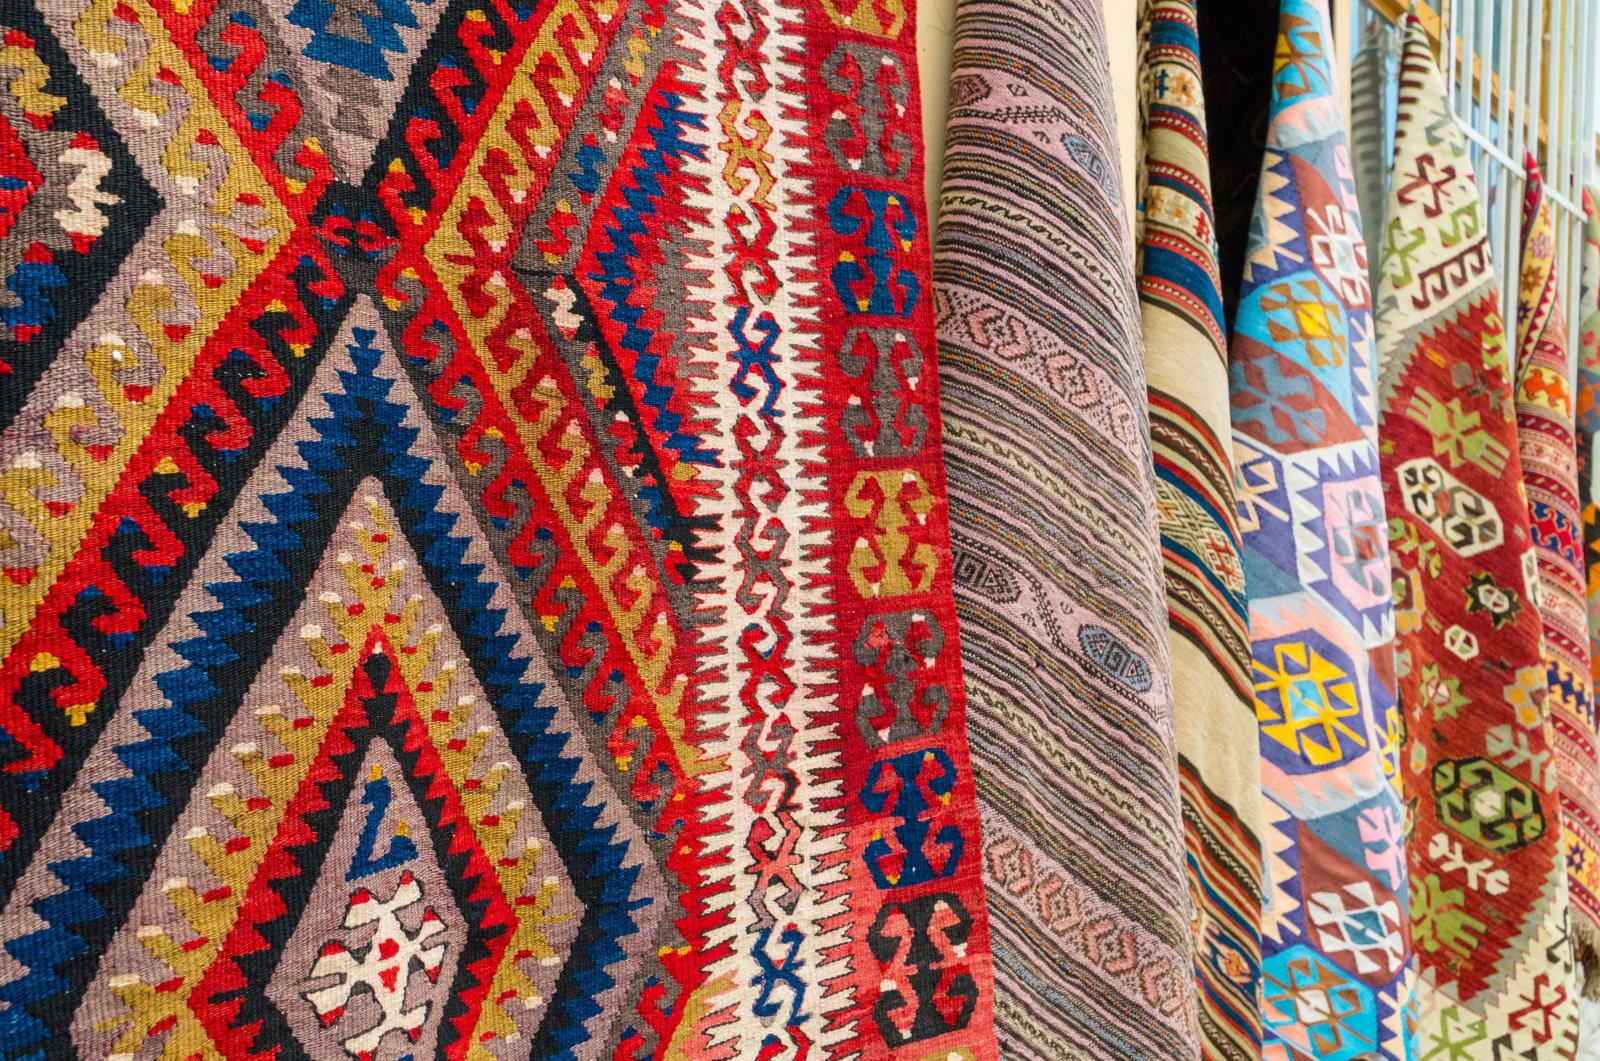 Different traditional Turkish carpets seen hanging on a wall on a street in old town Kaleiçi, Antalya, southern Turkey. (Shutterstock Photo)